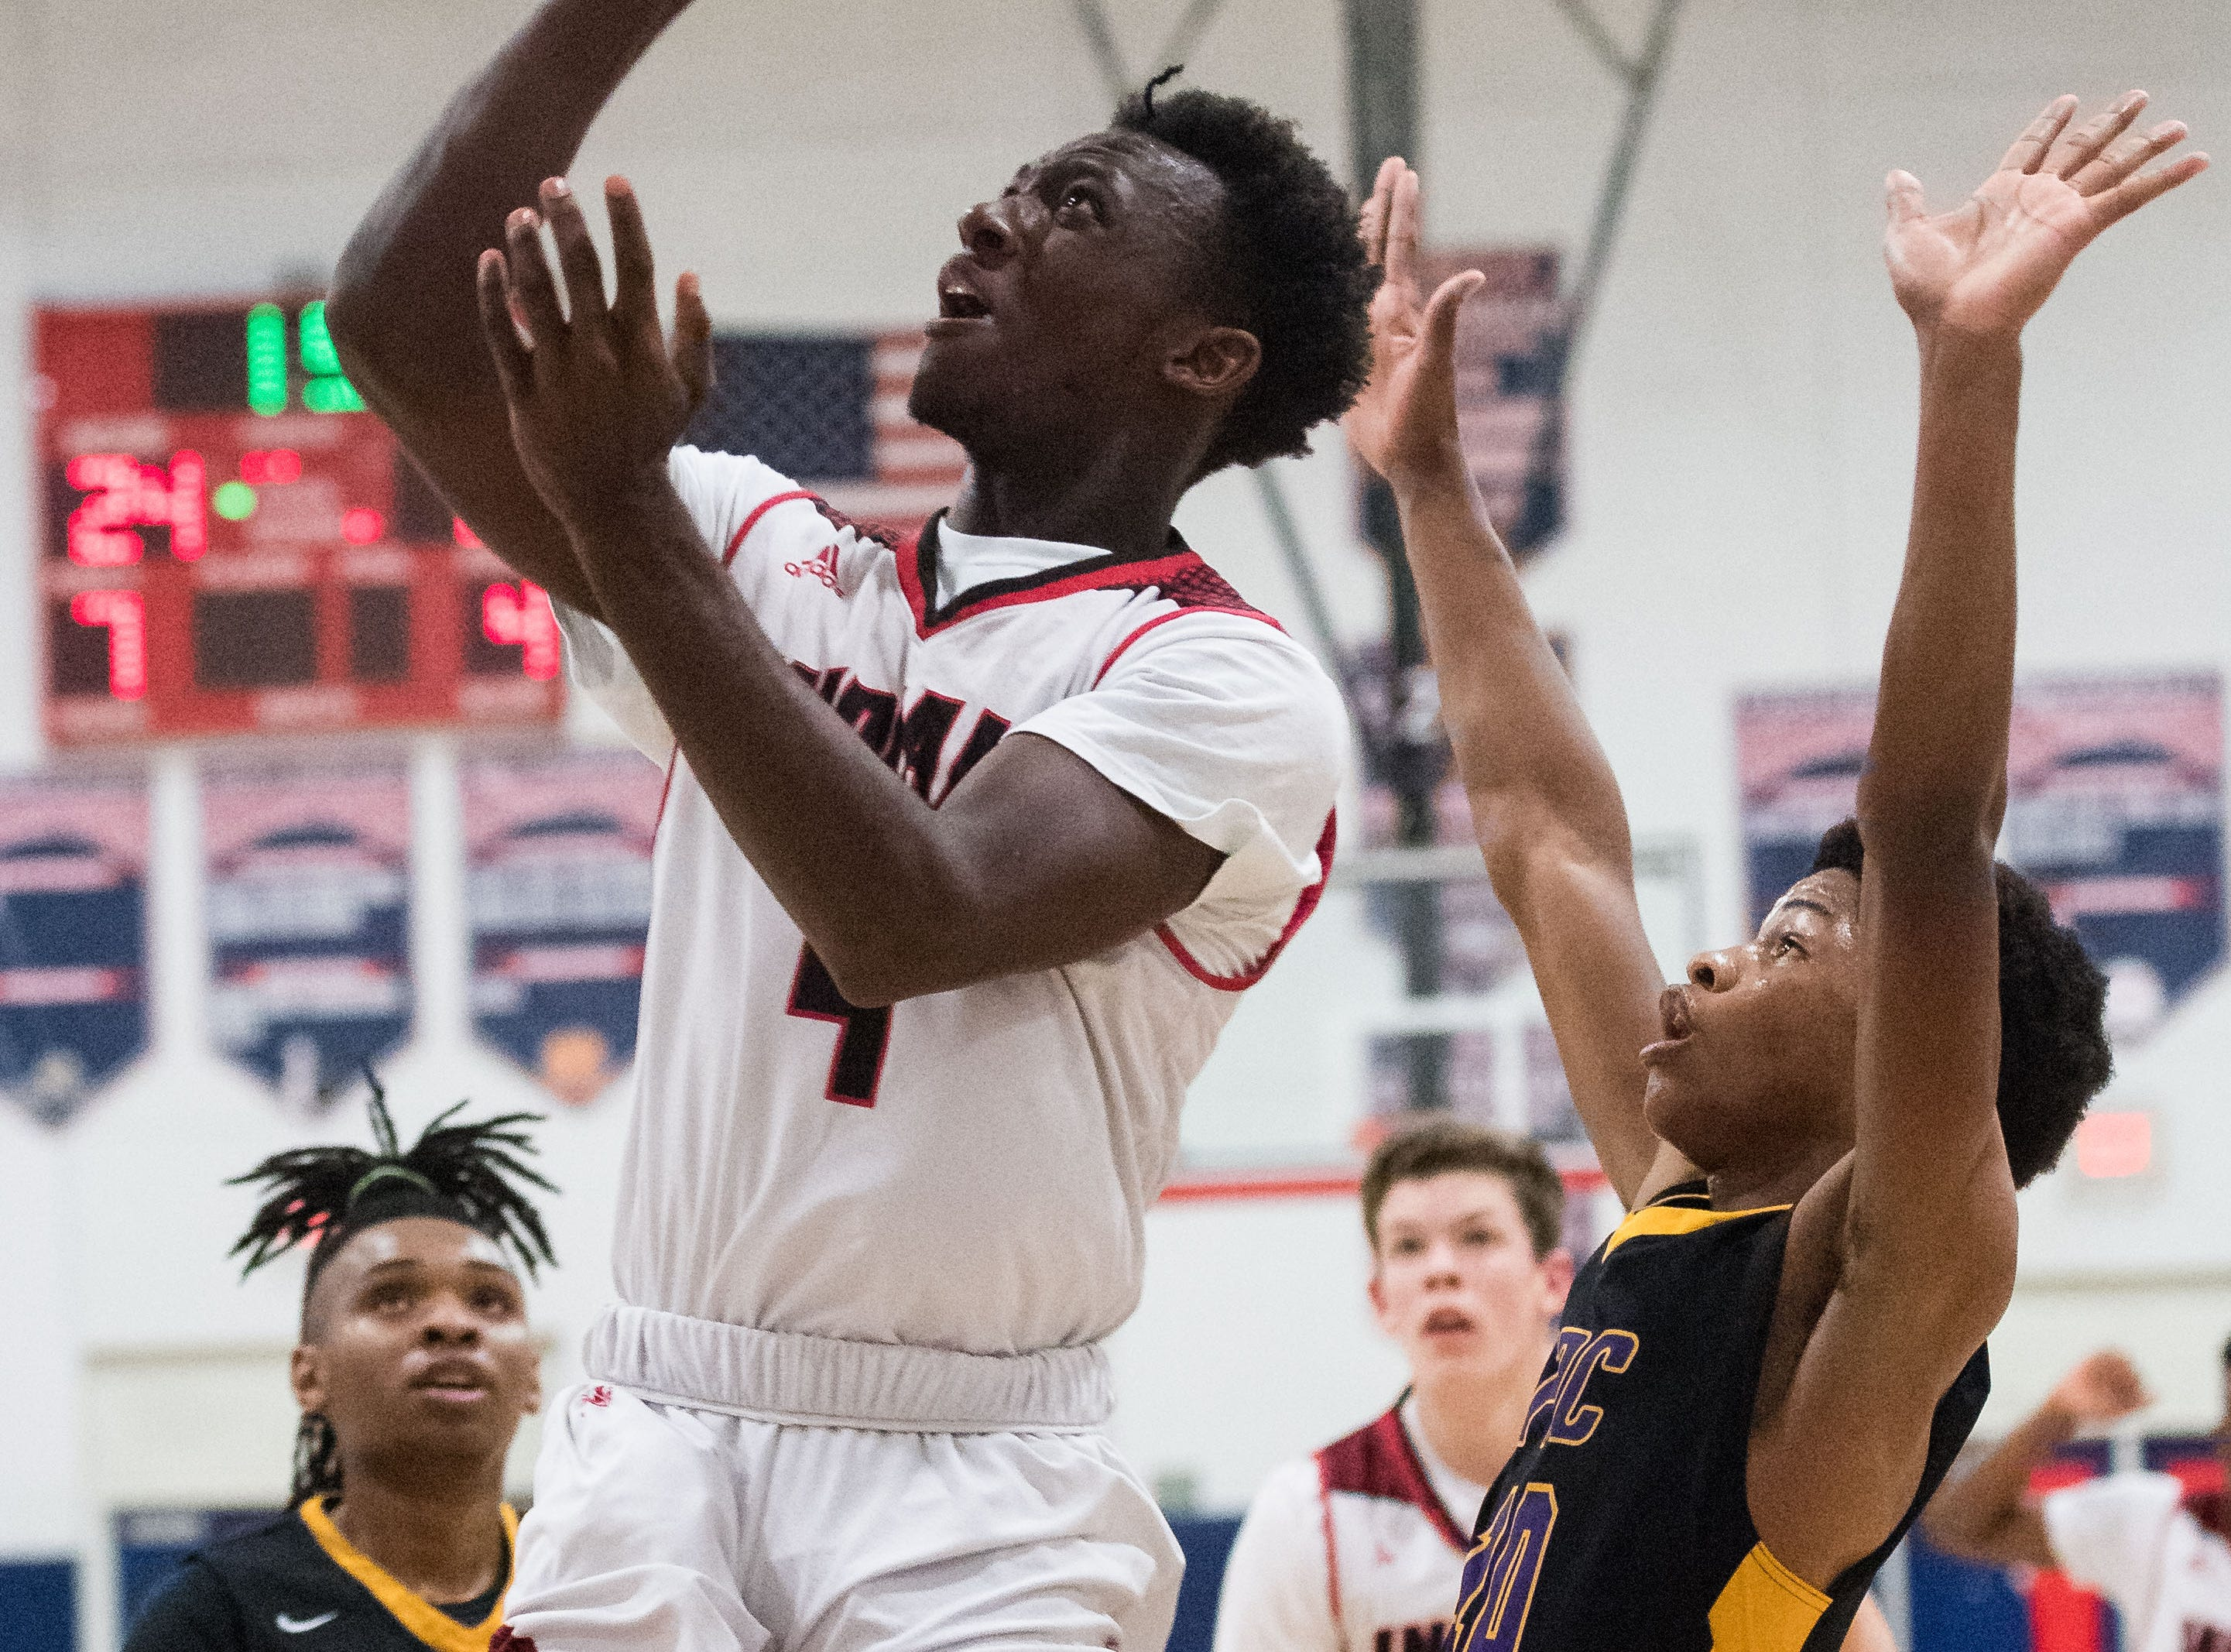 Vero Beach plays against Fort Pierce Central during the high school boys basketball District 8-9A tournament game Wednesday, Feb. 13, 2019, at St. Lucie West Centennial High School in Port St. Lucie.